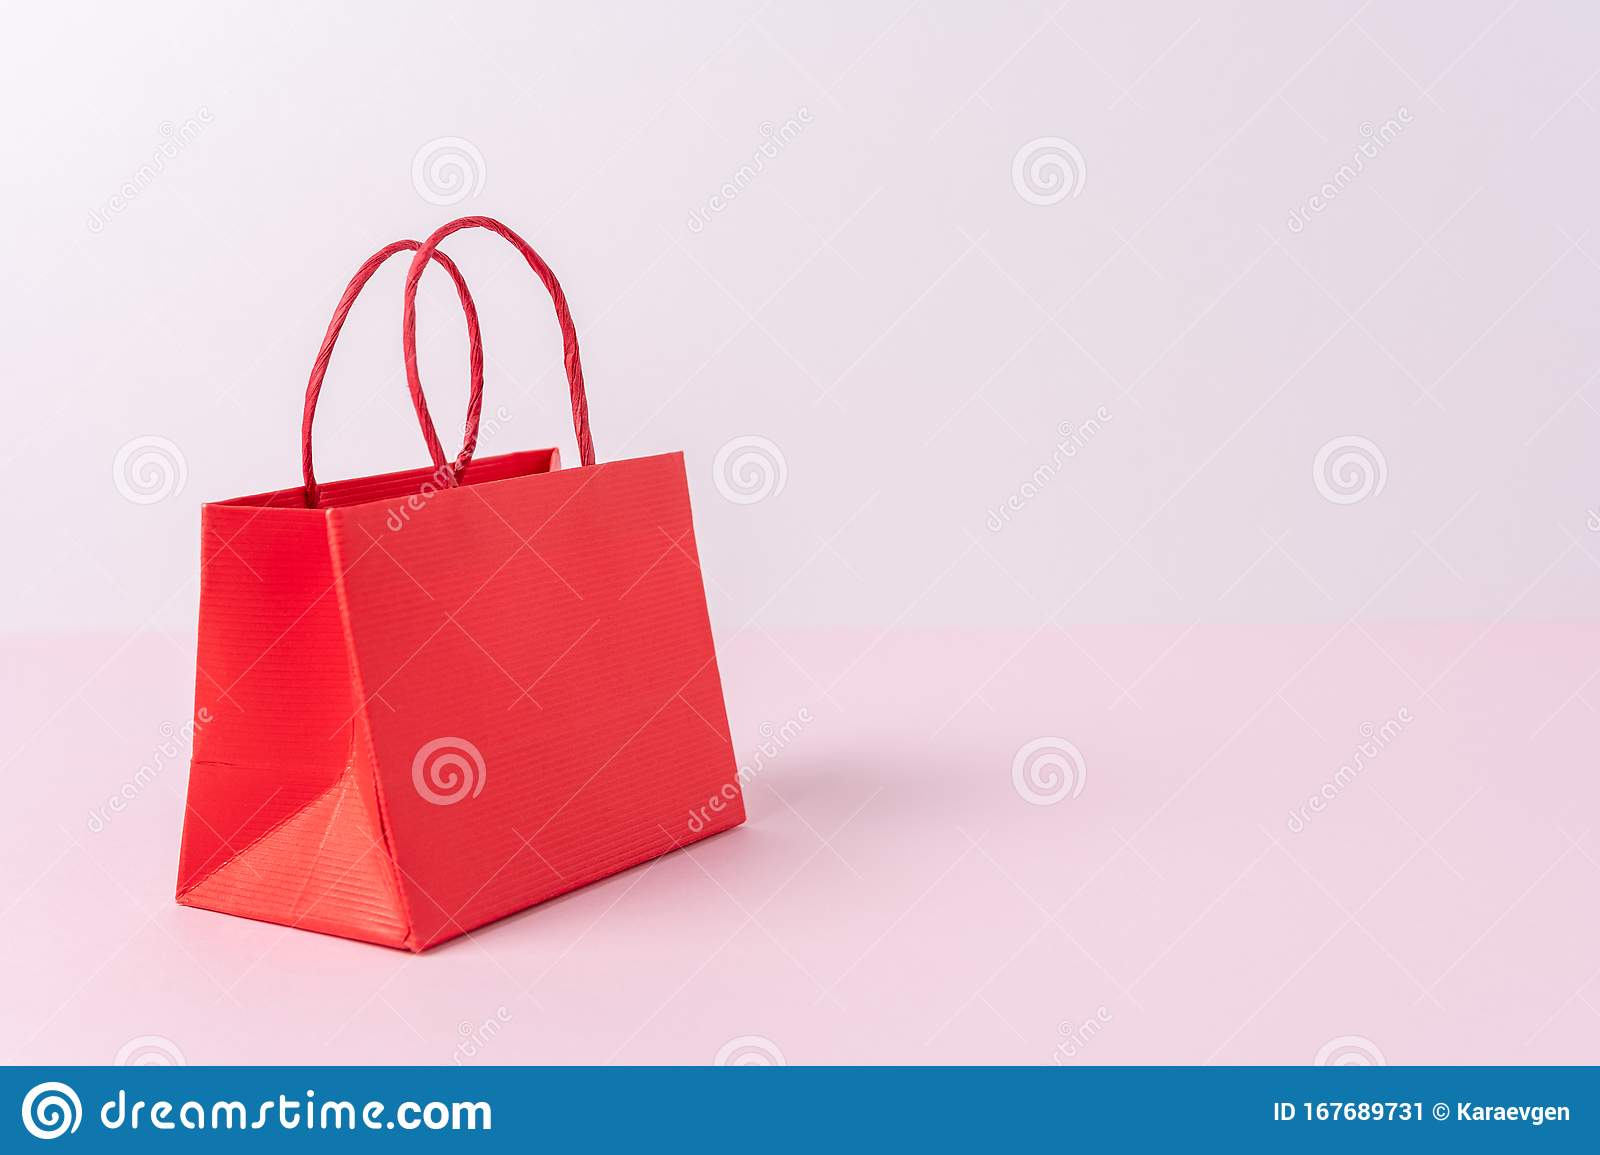 Colorful Paper Shopping Bag On Bright Background Creative Minimal Shopping Concept Stock Image Image Of Decoration Carry 167689731